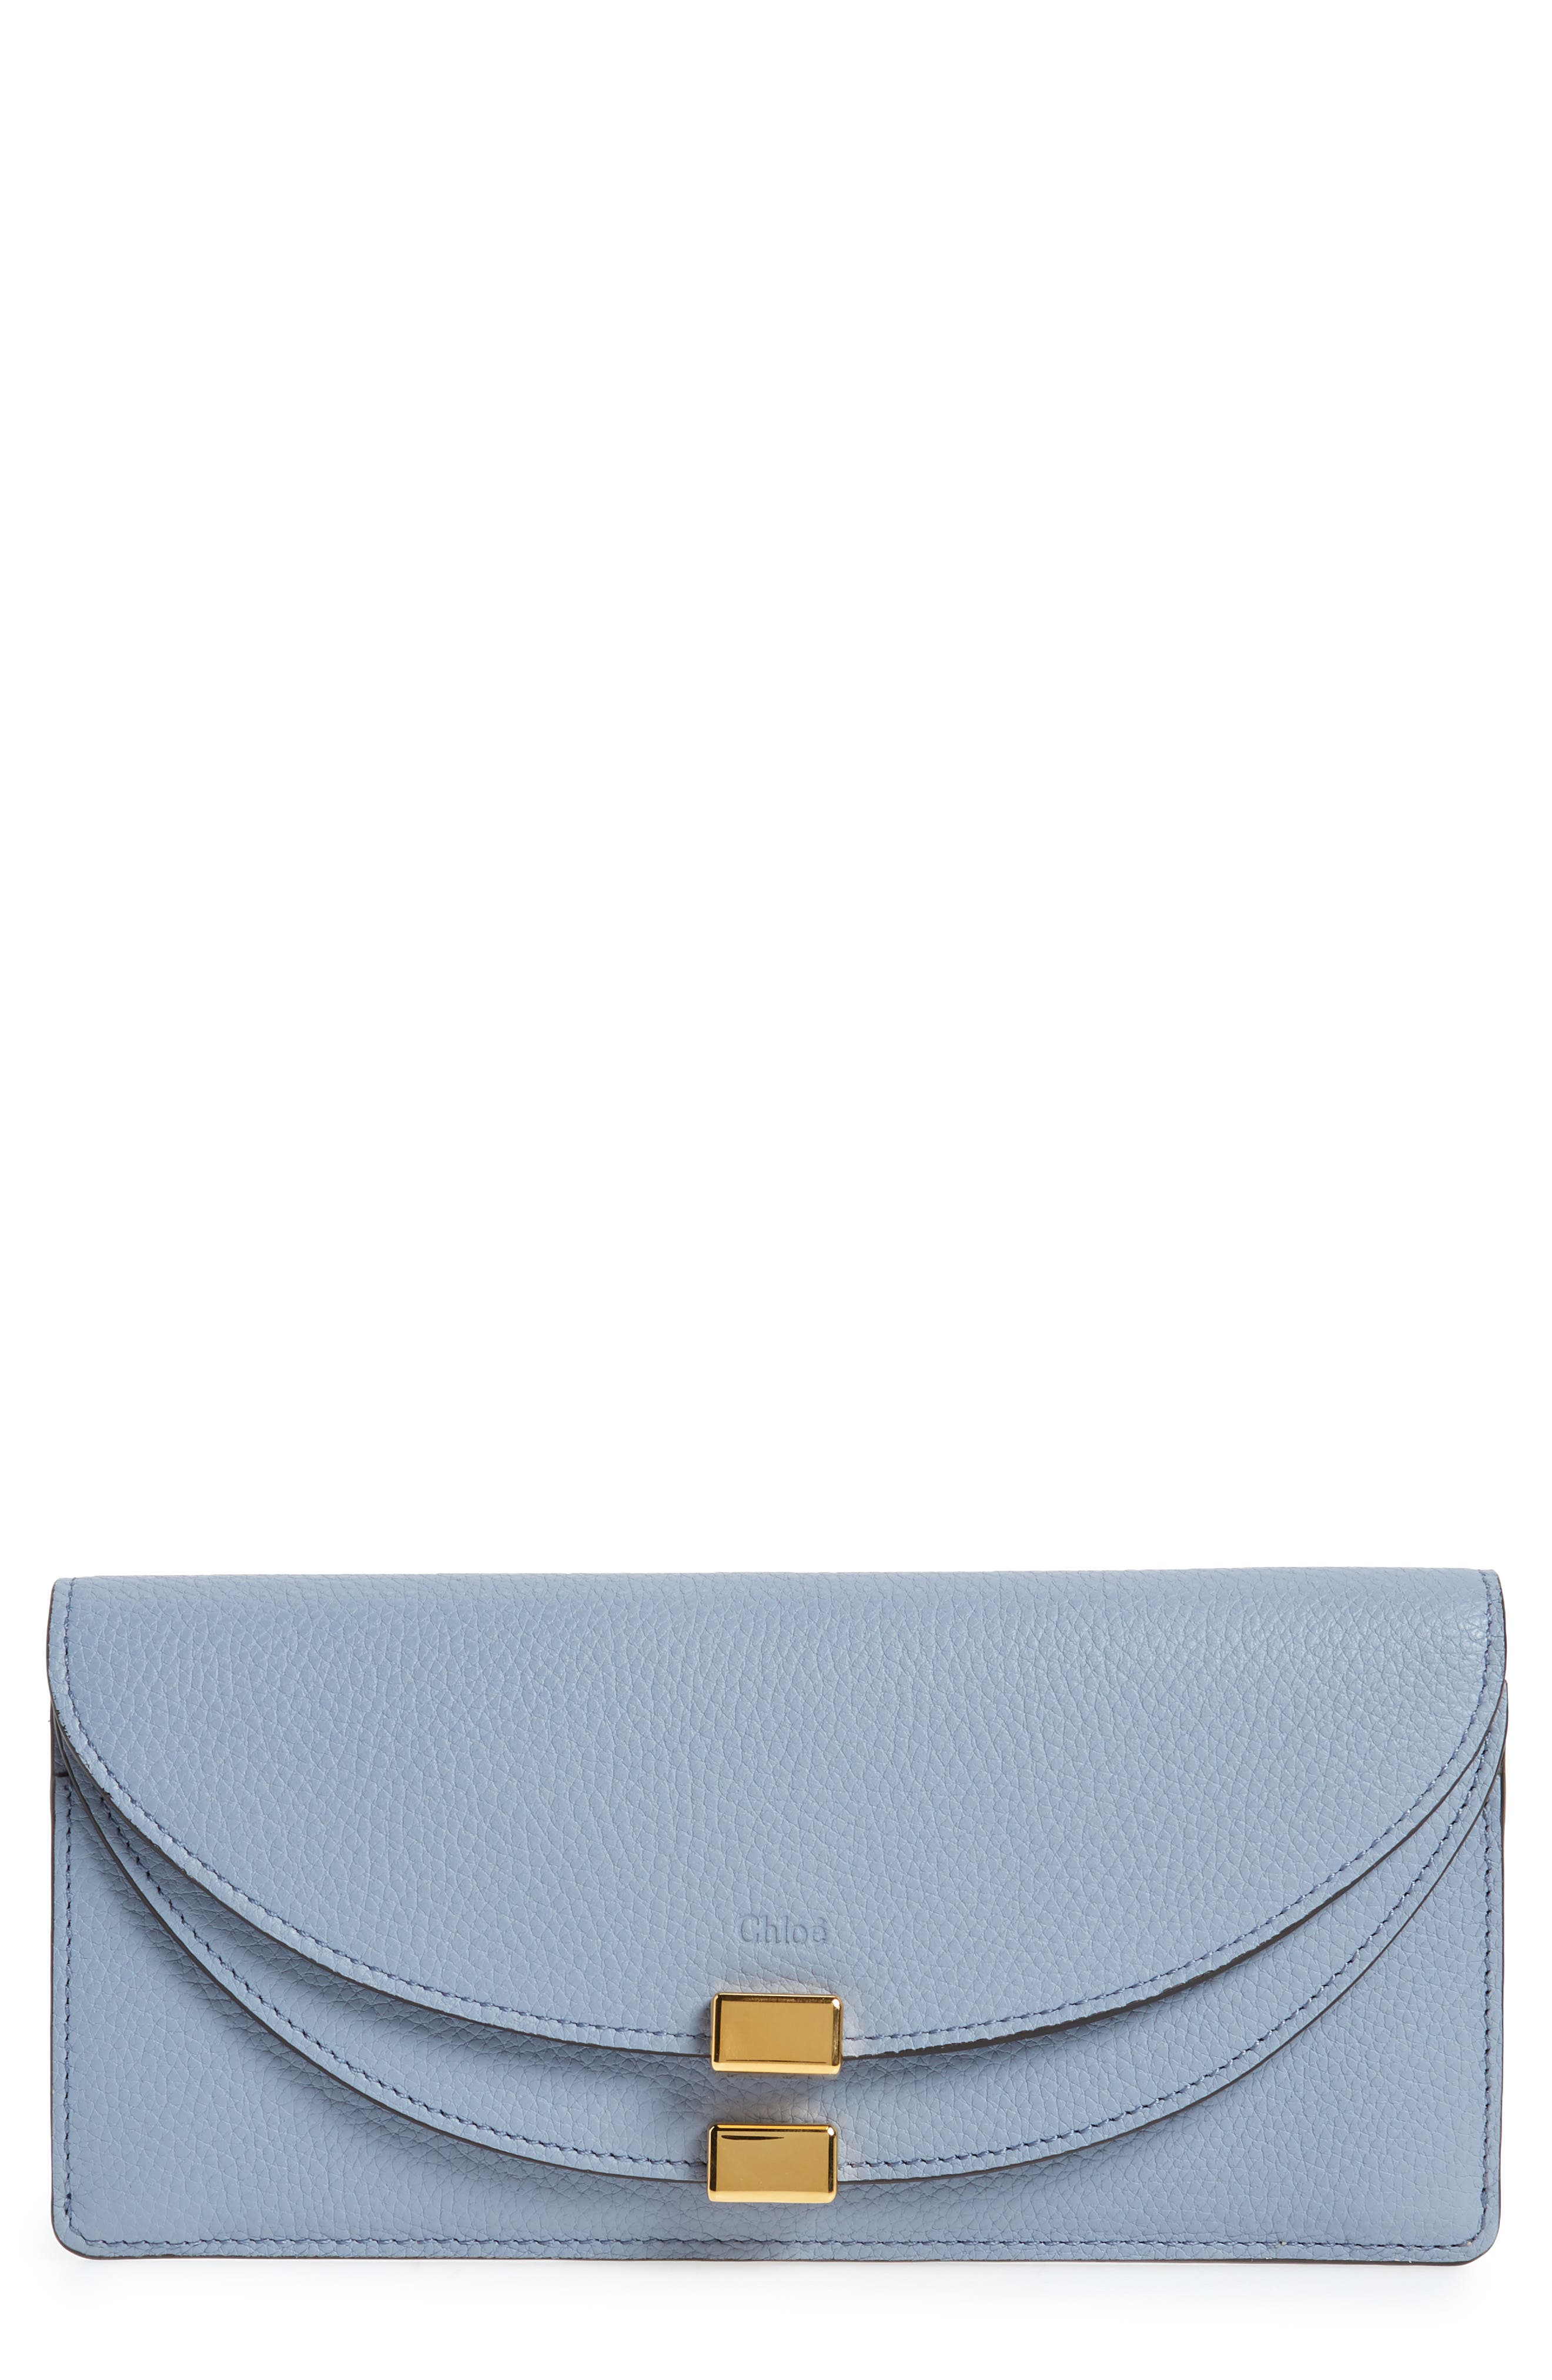 Georgia Continental Leather Wallet,                         Main,                         color, Washed Blue